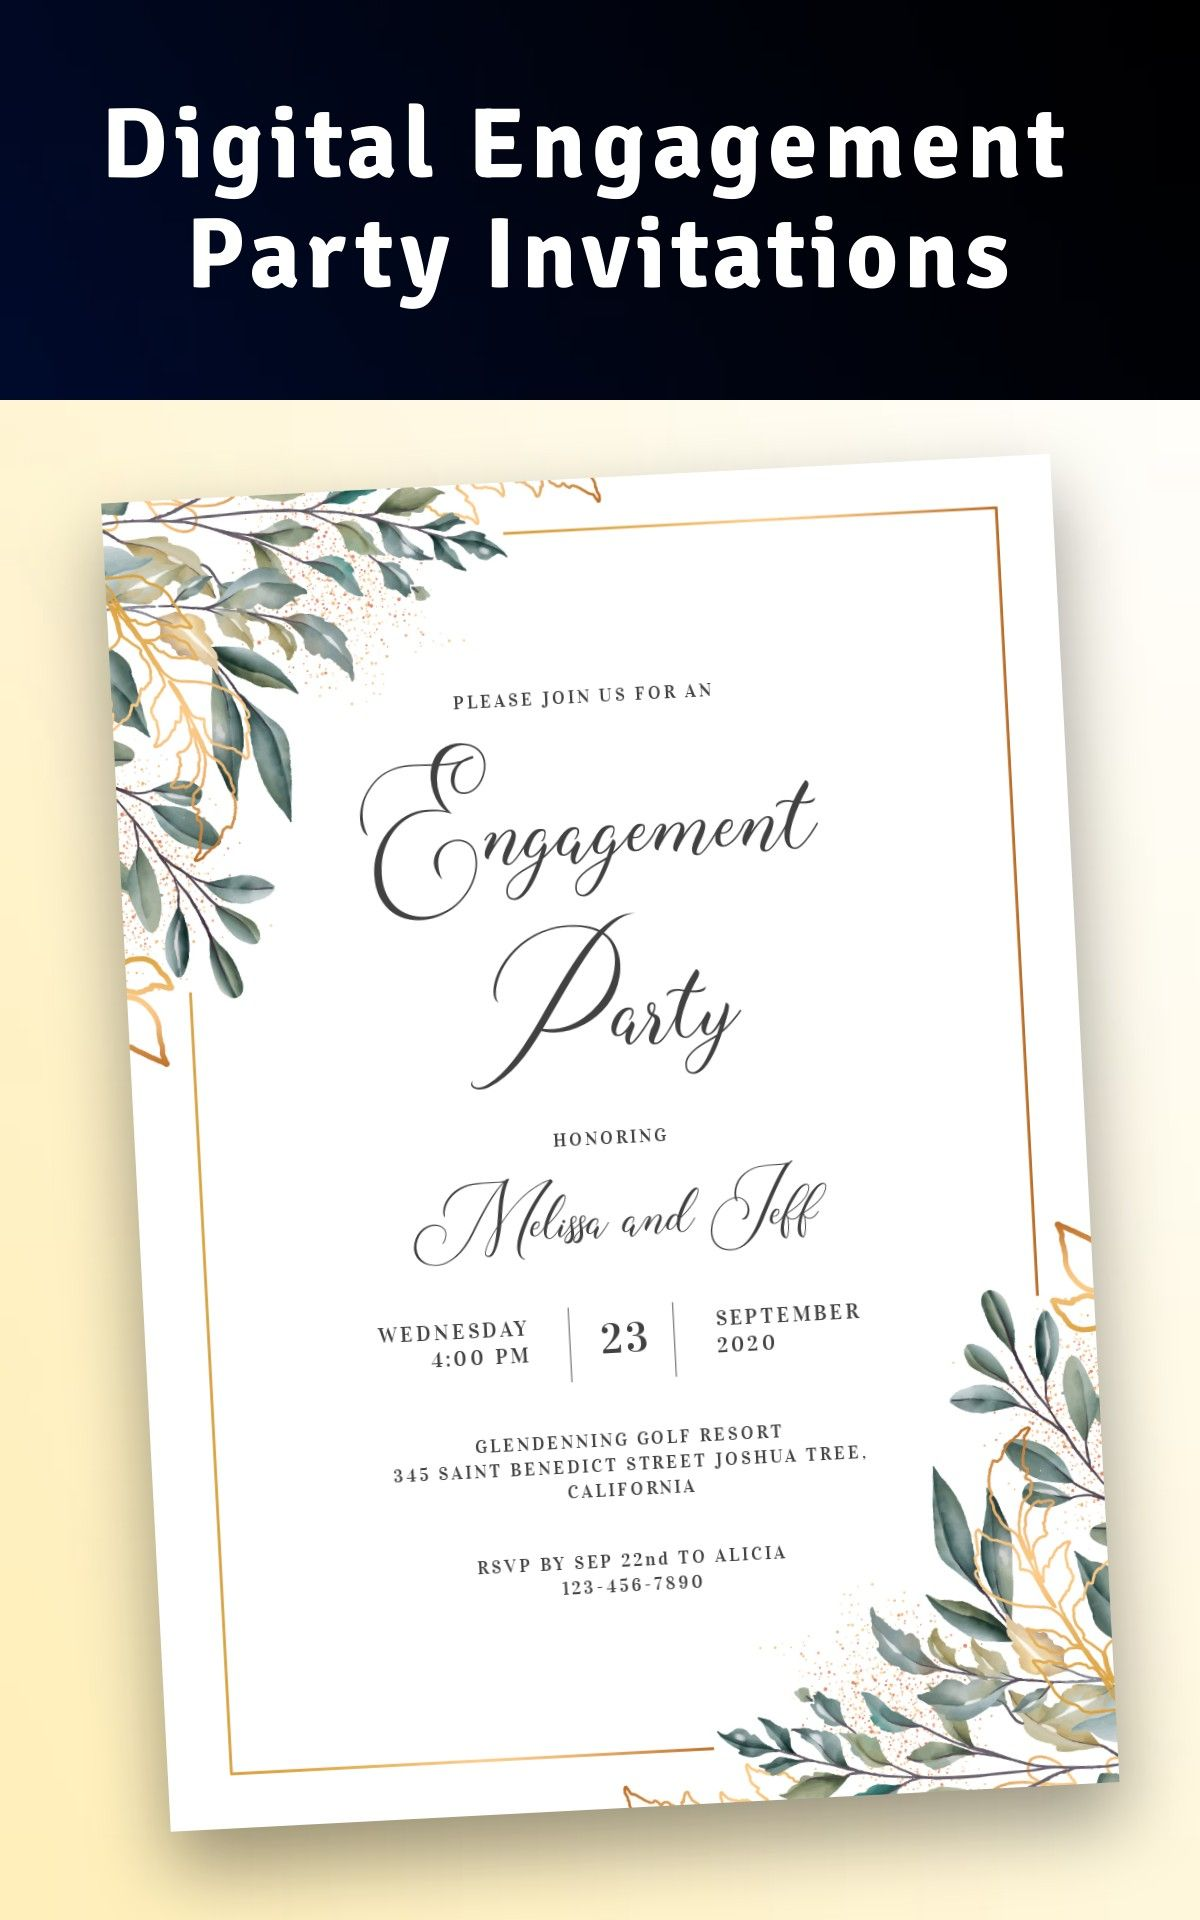 Digital Engagement Party Invitations Create Beautiful Invitation Online Engagement Party Invitations Engagement Party Invitations Engagement Invitation Cards